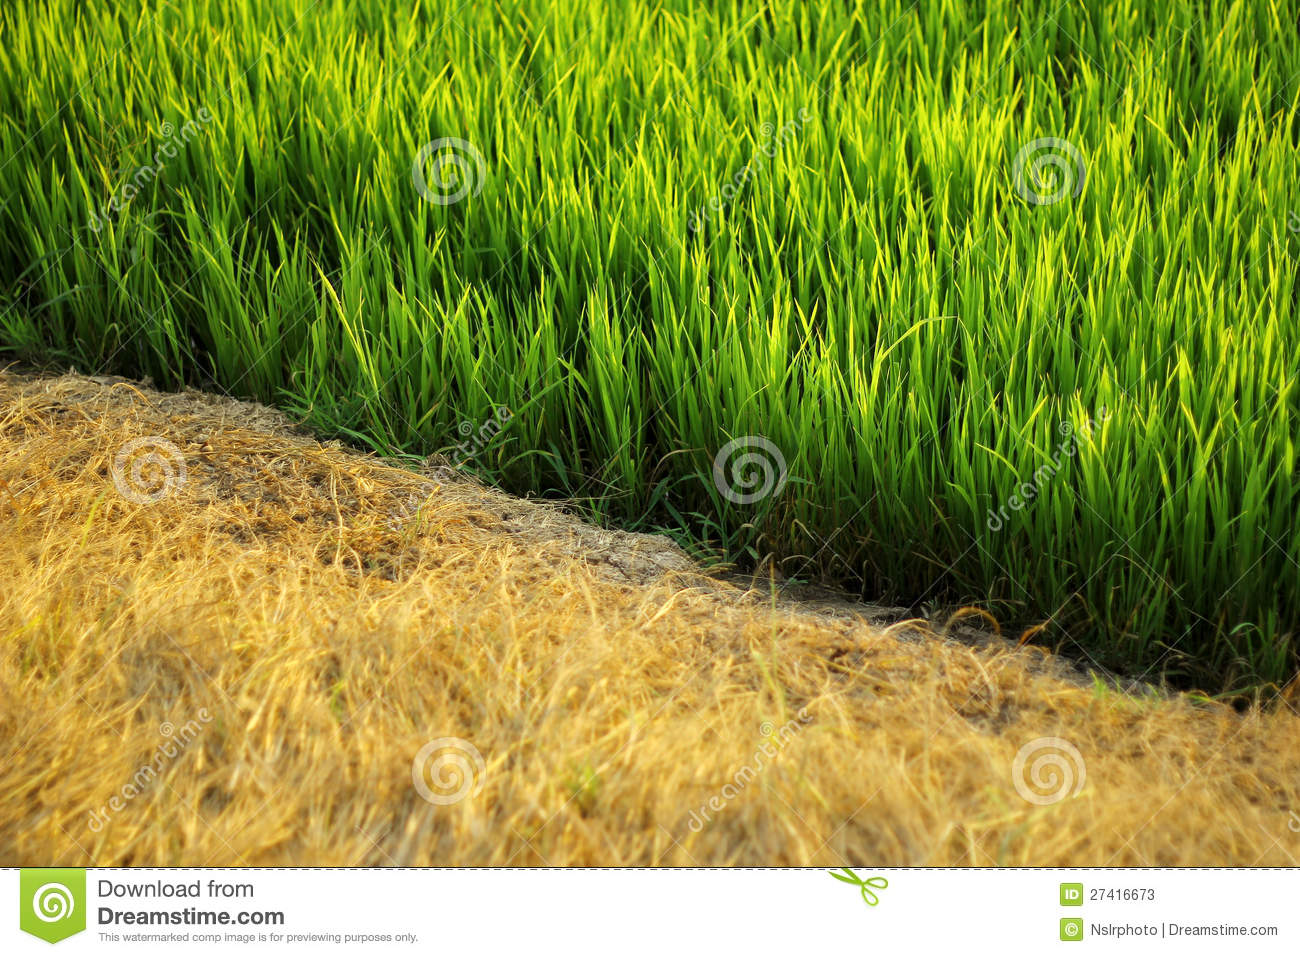 garden design with died yellow grass and green rice plants stock photos image with images